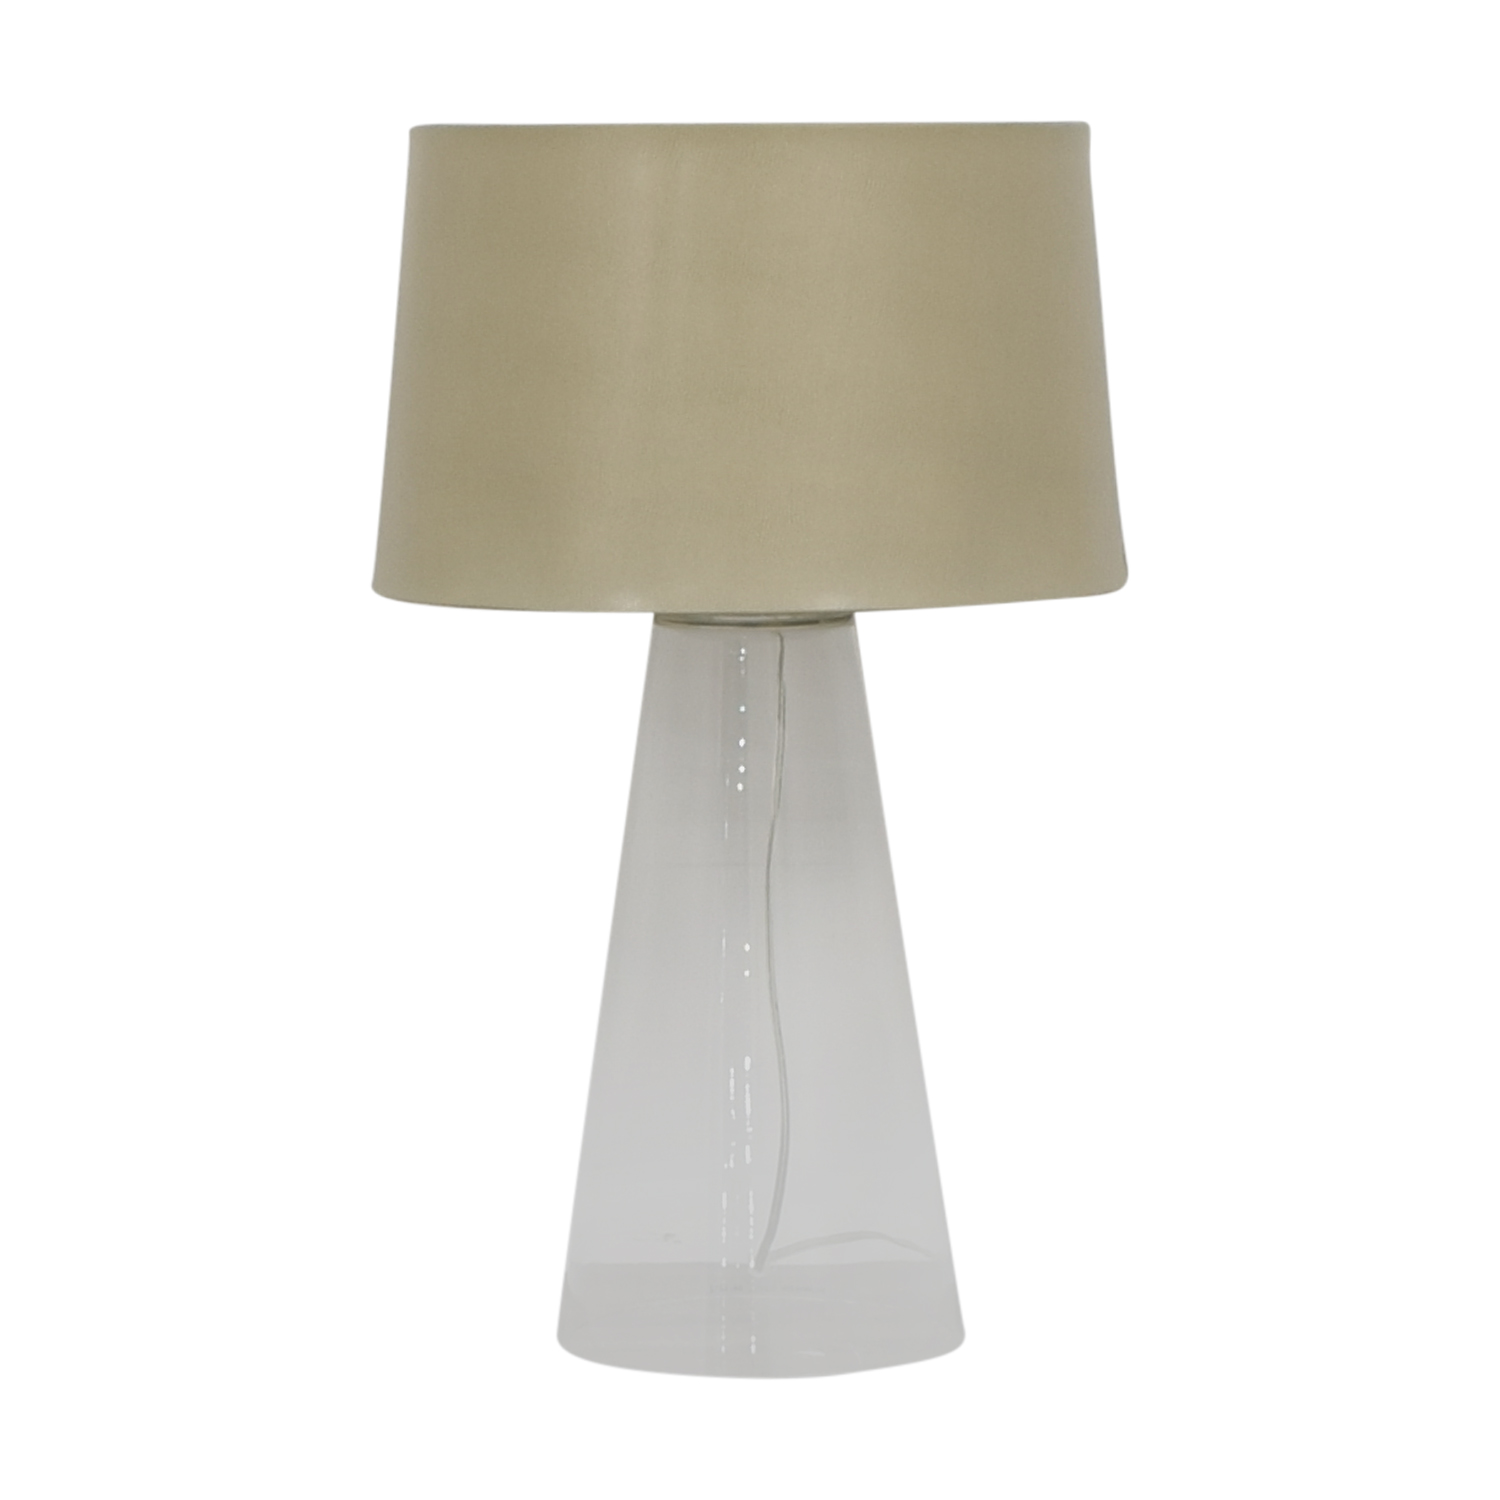 Crate & Barrel Crate & Barrel Table Lamp coupon